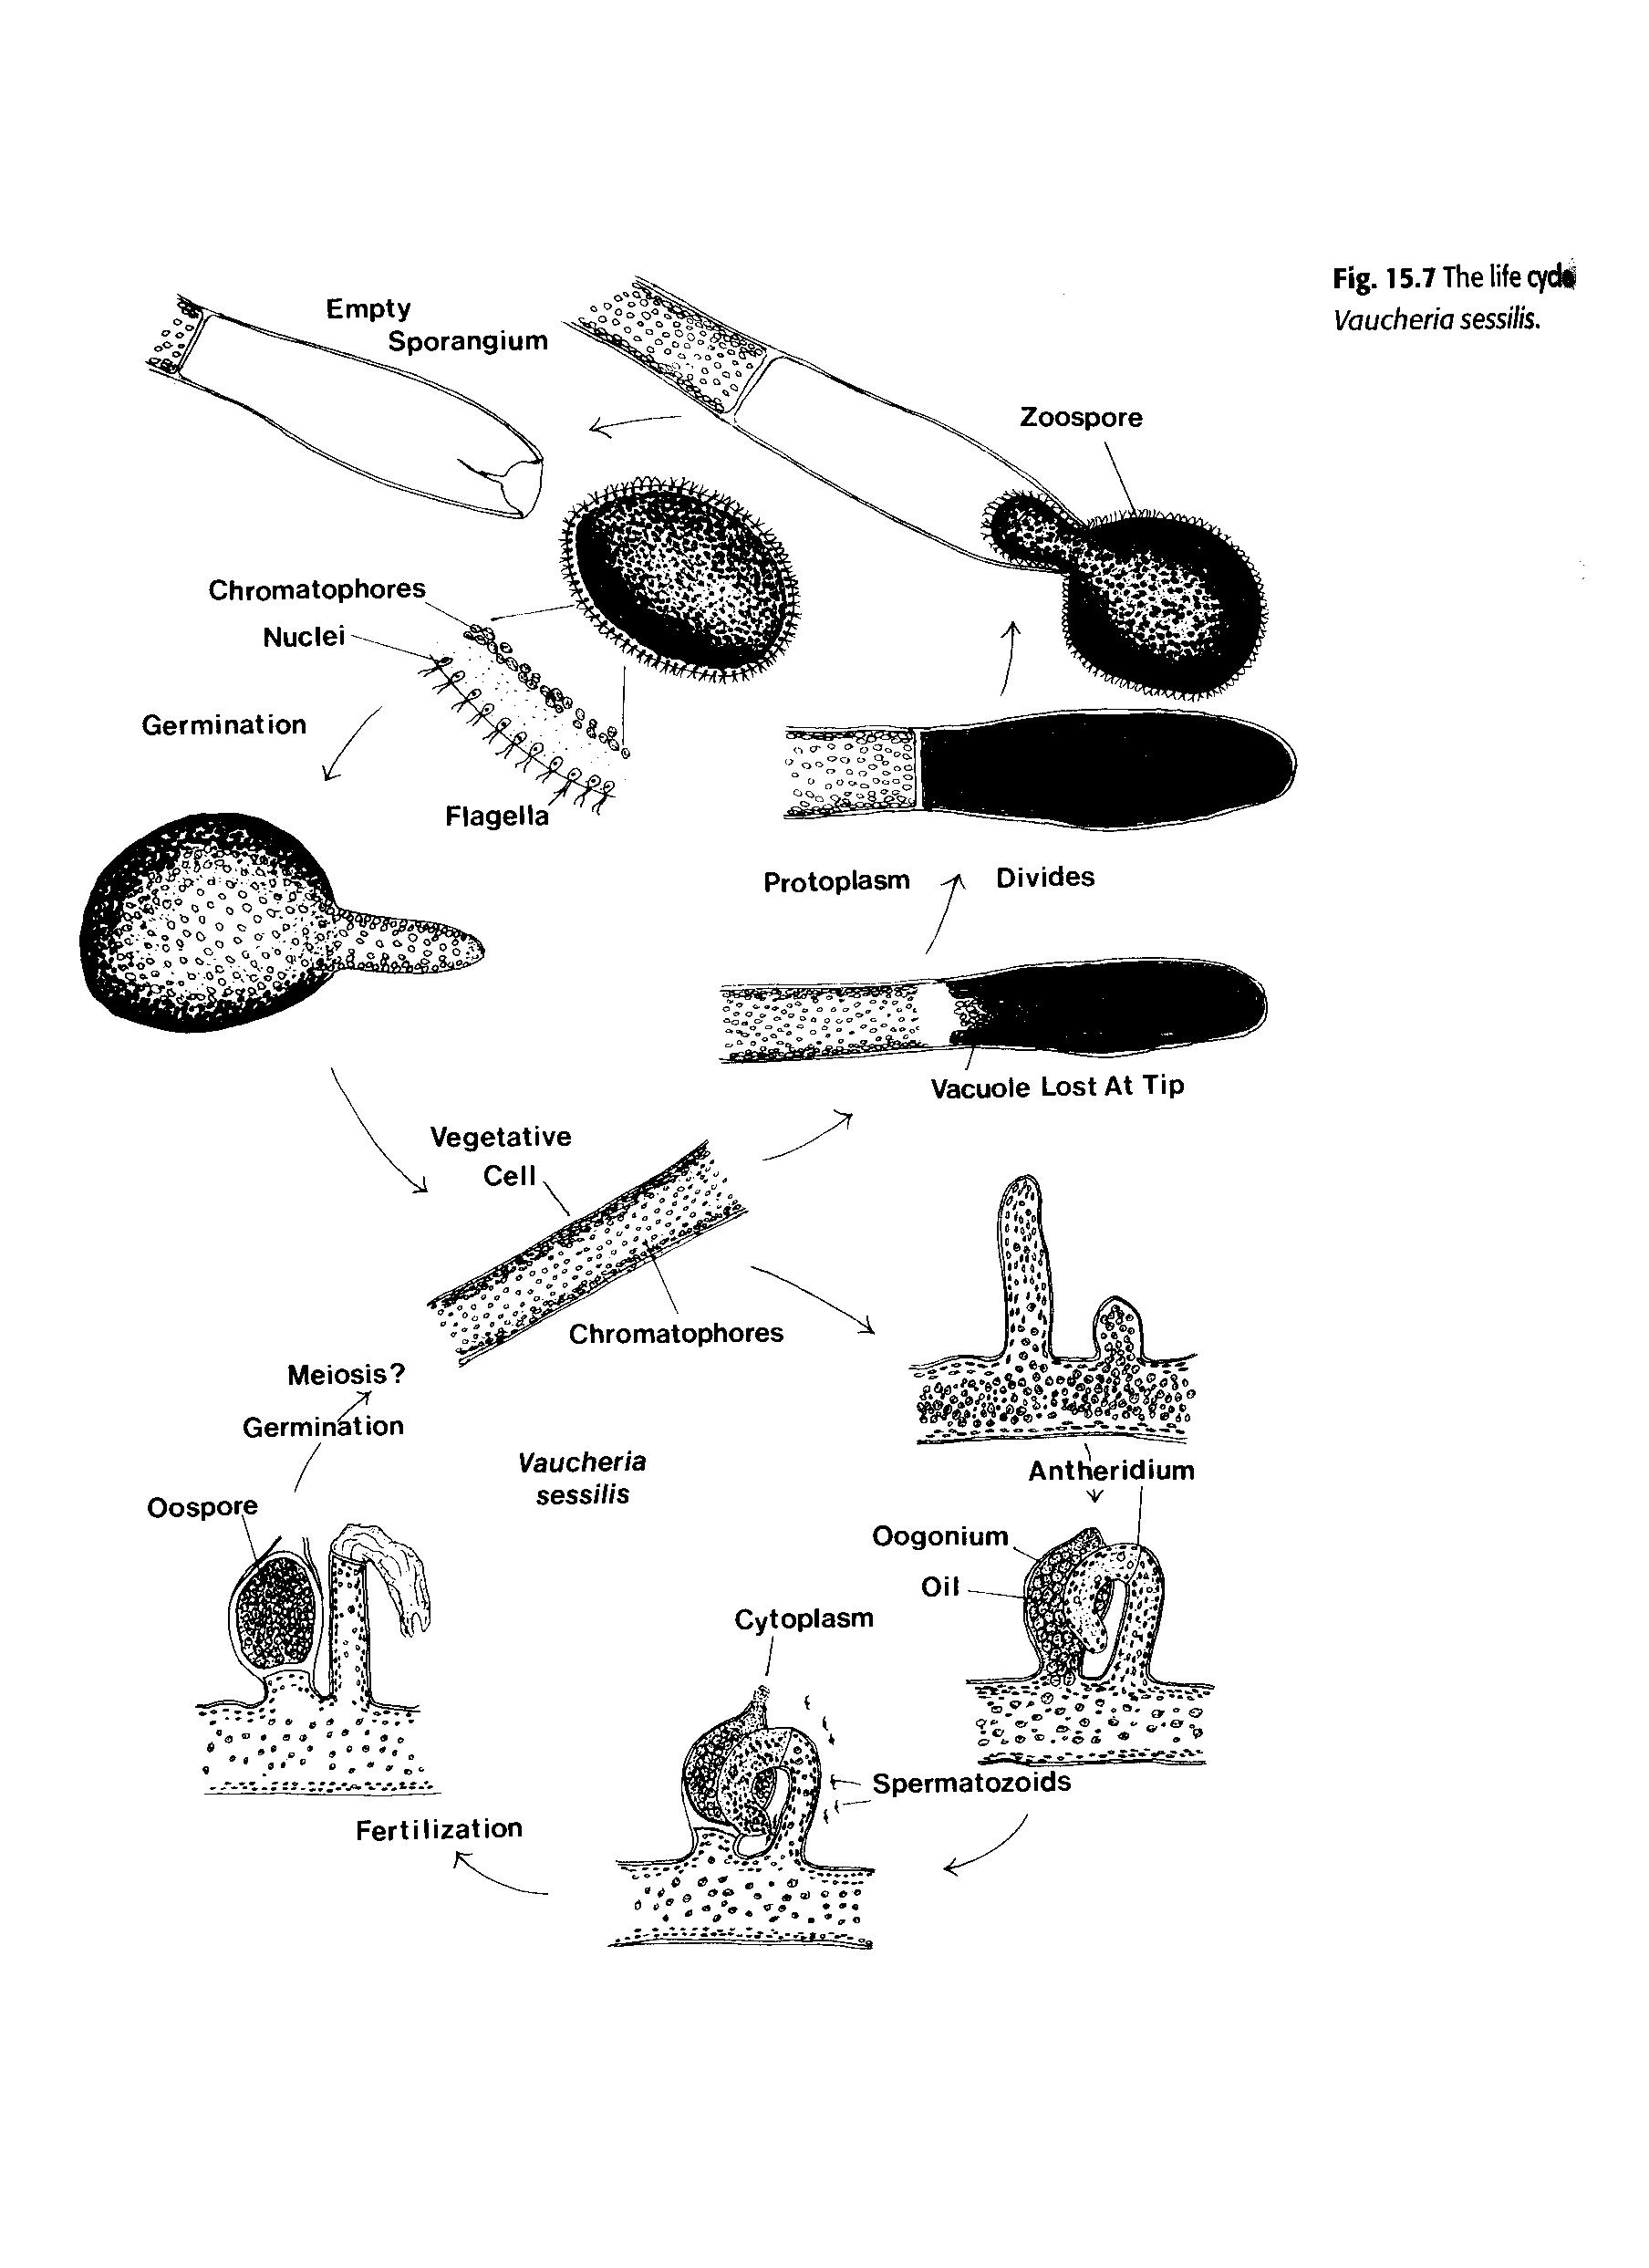 Vaucheria asexual reproduction definition